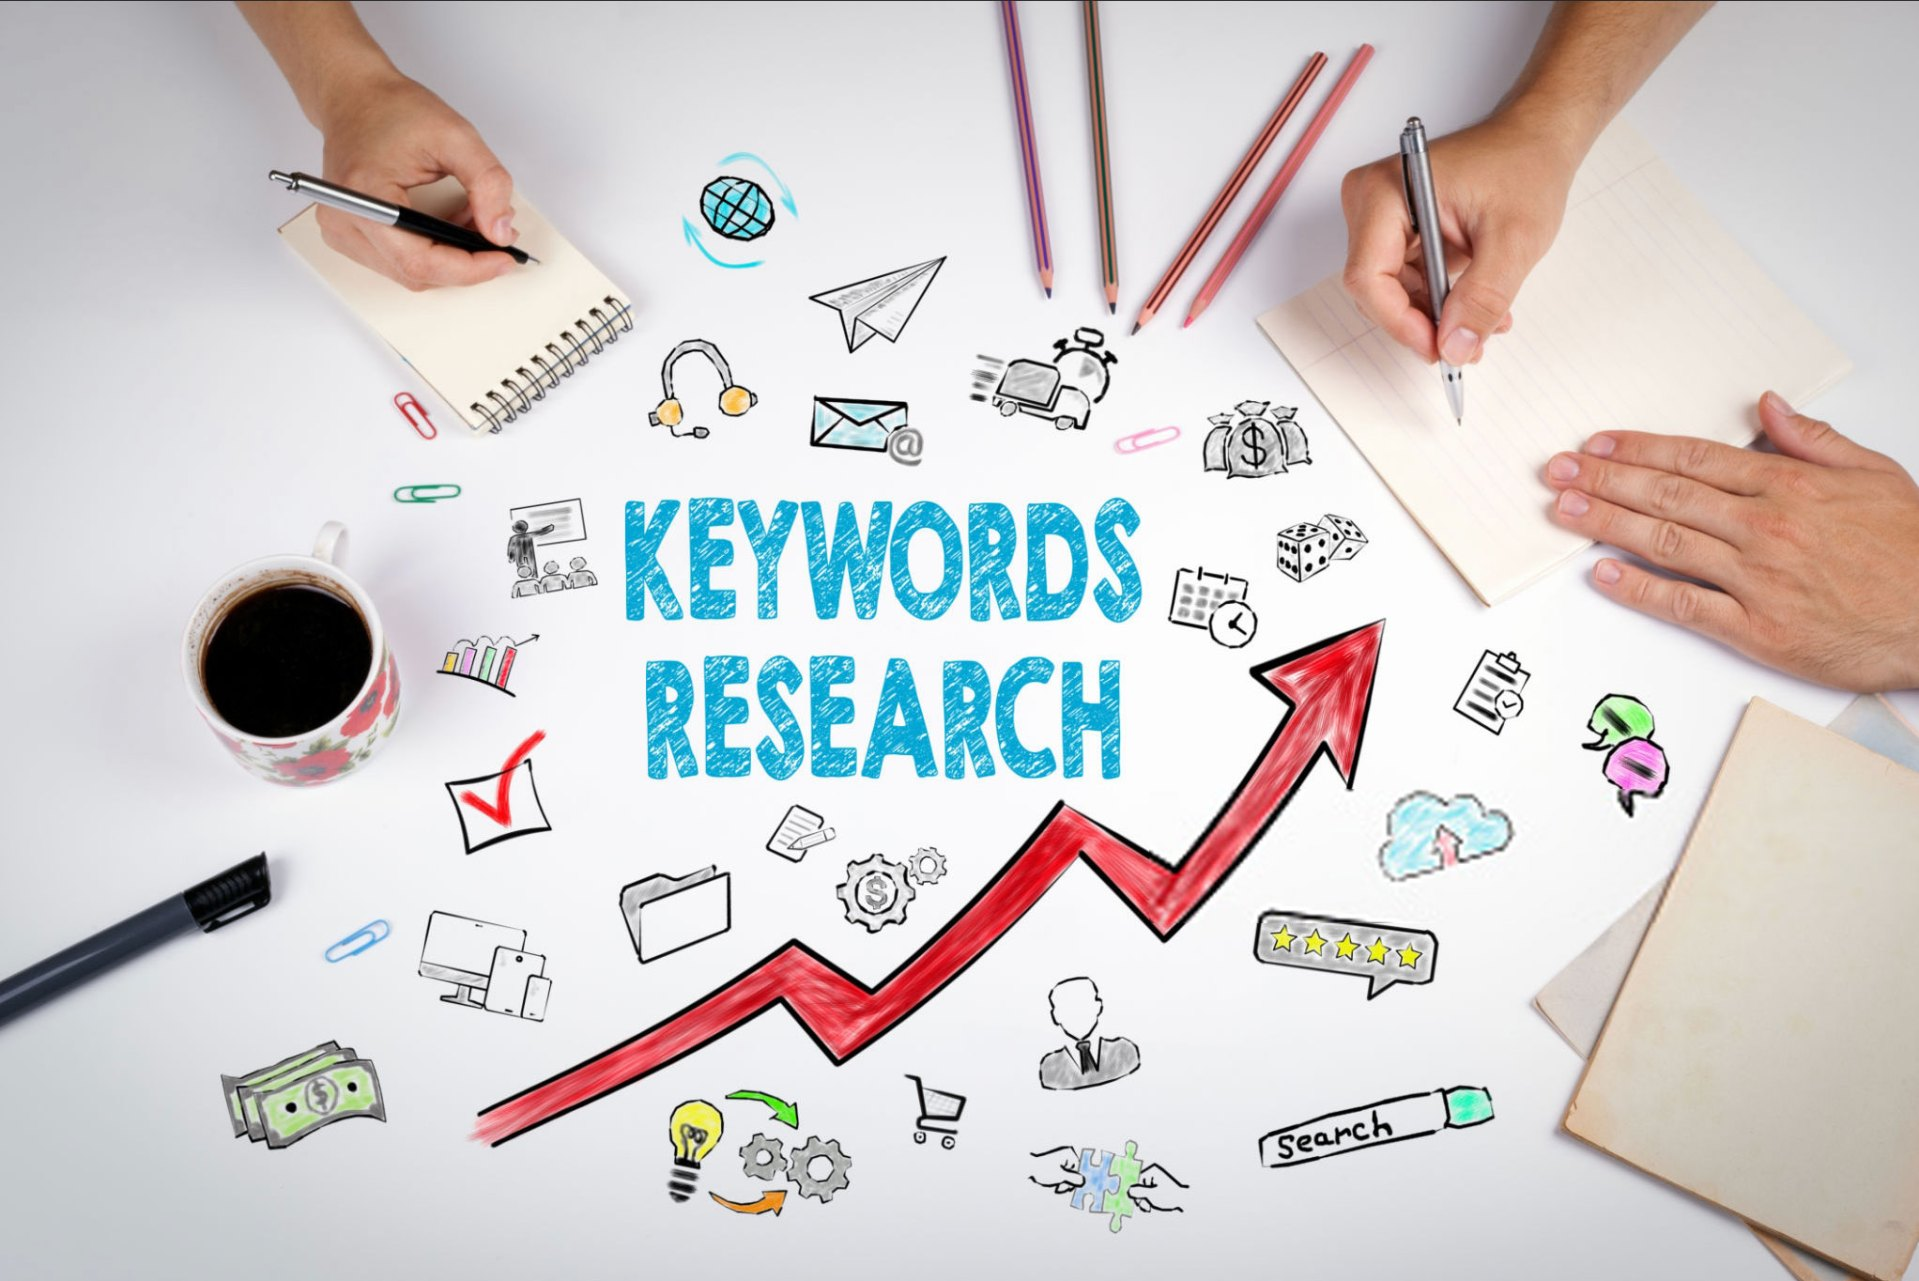 10 Reasons Why Keyword Research Should be a SEO Priority for your Website Marketing